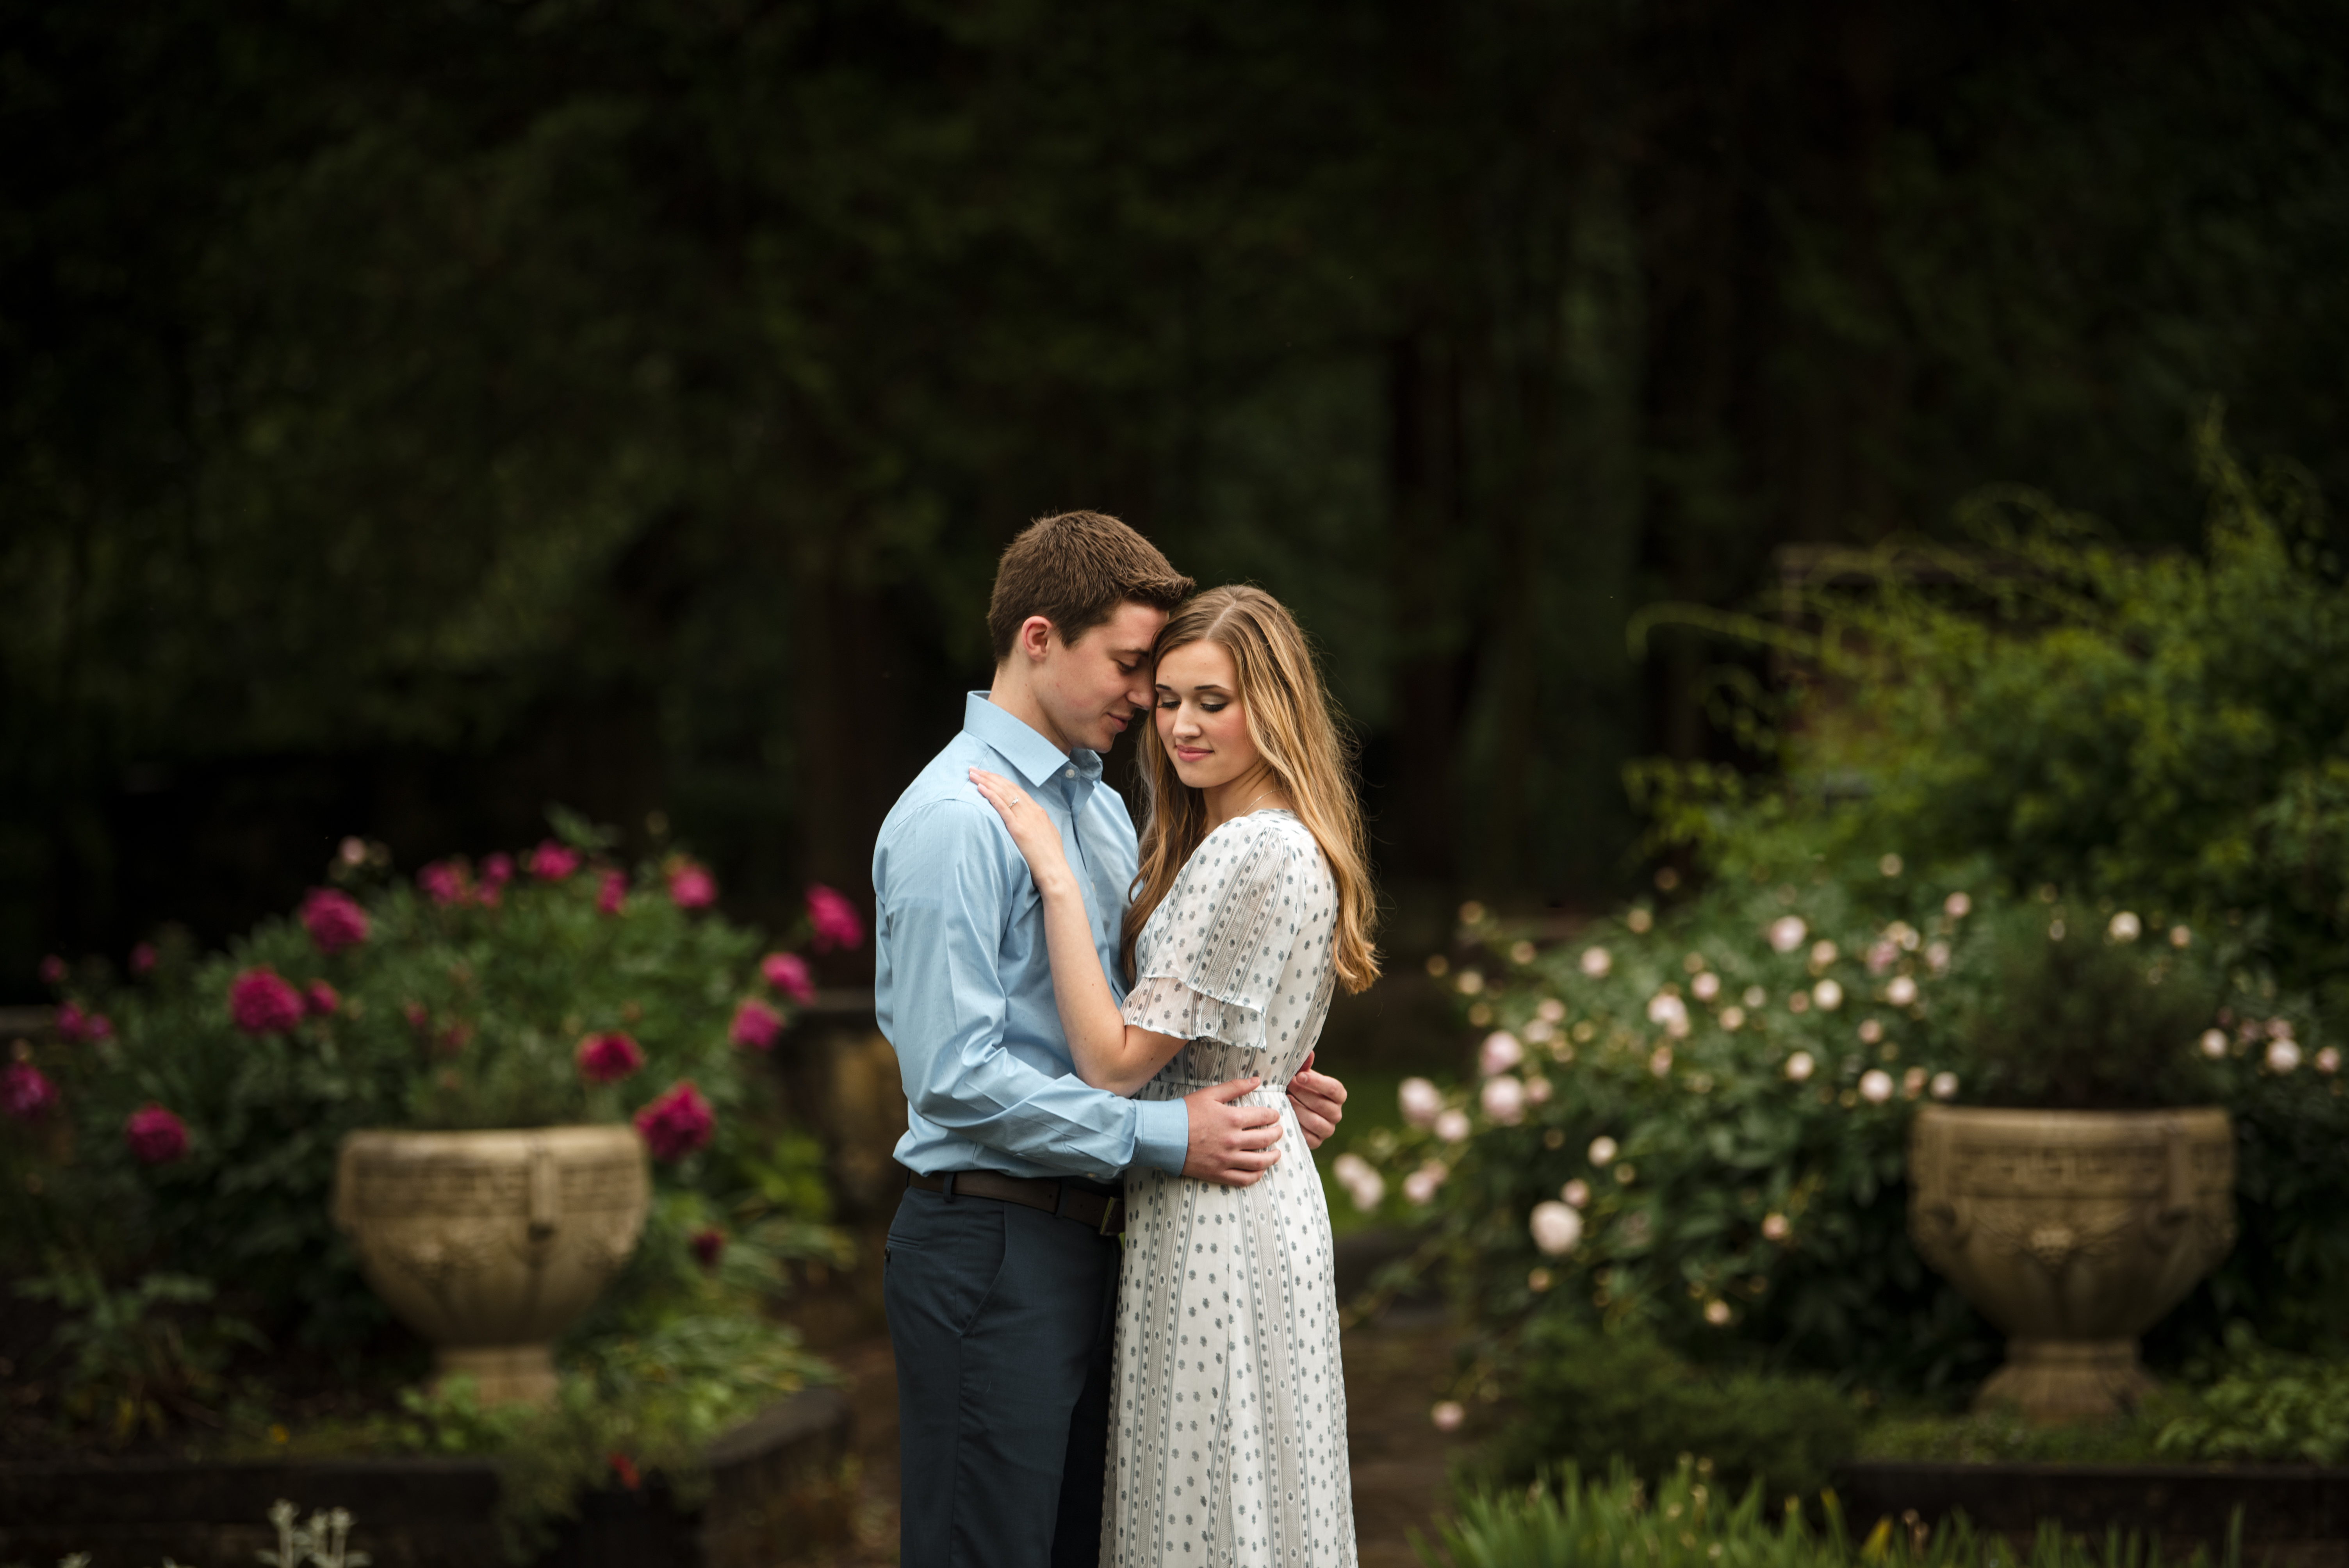 Quail Hollow Engagement